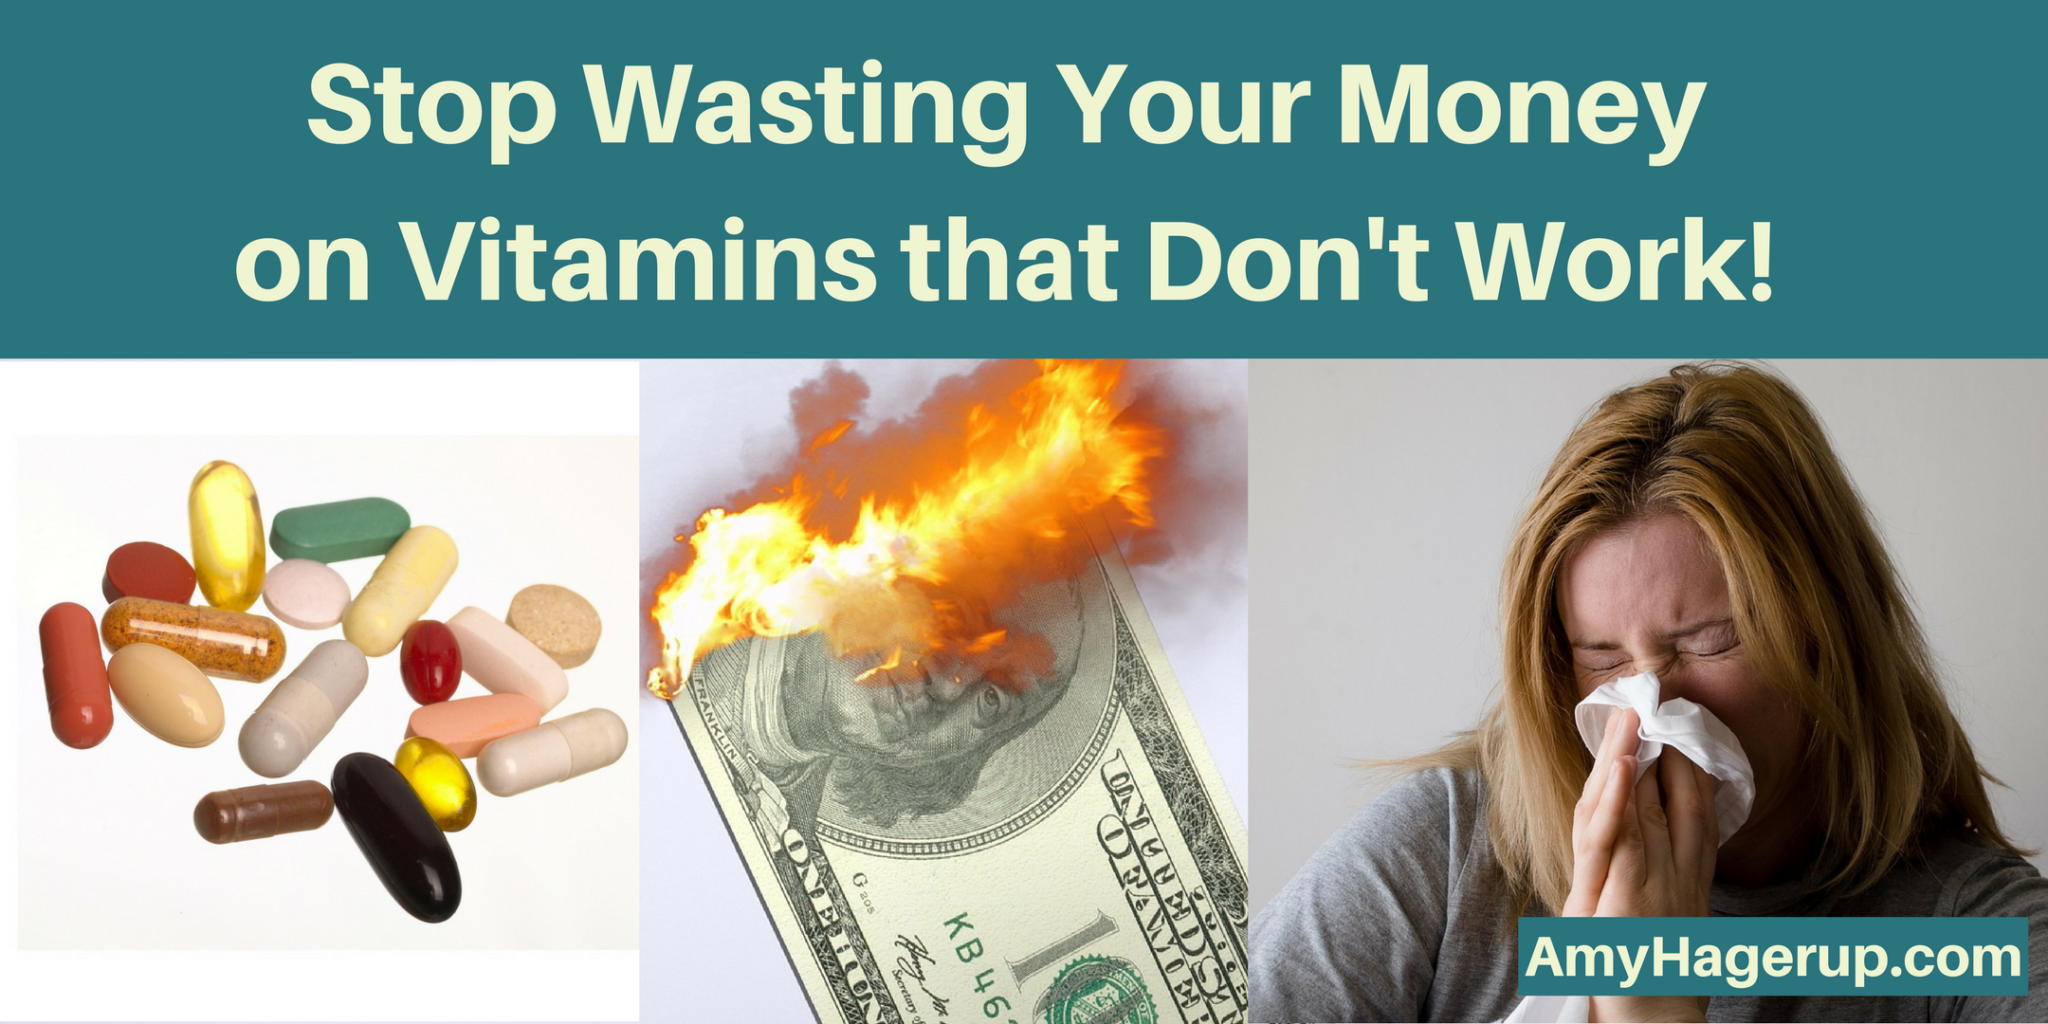 You need to stop wasting your money on vitamins that don't work.